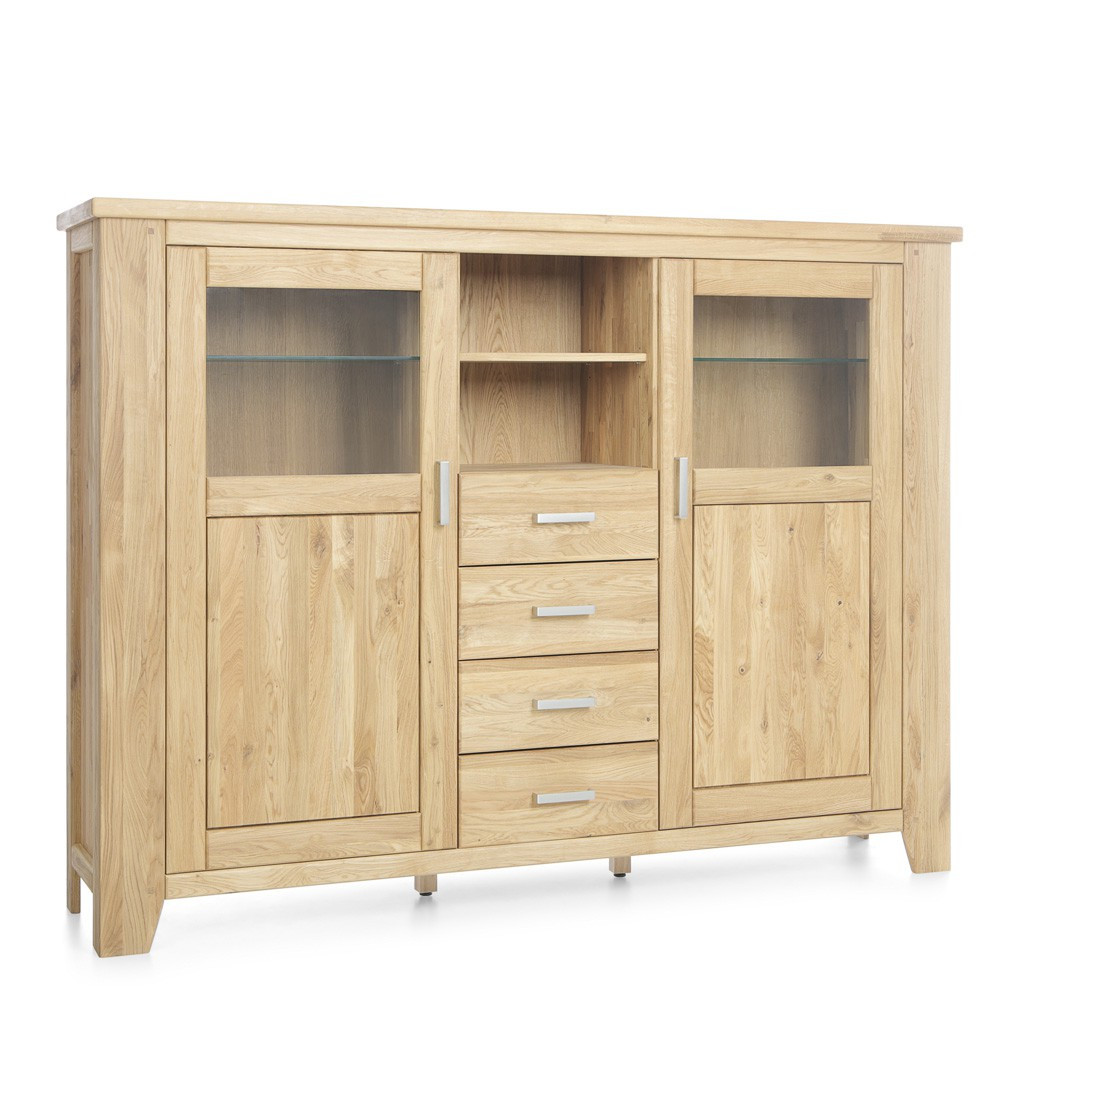 highboard-wildeiche-massiv-loft.jpg